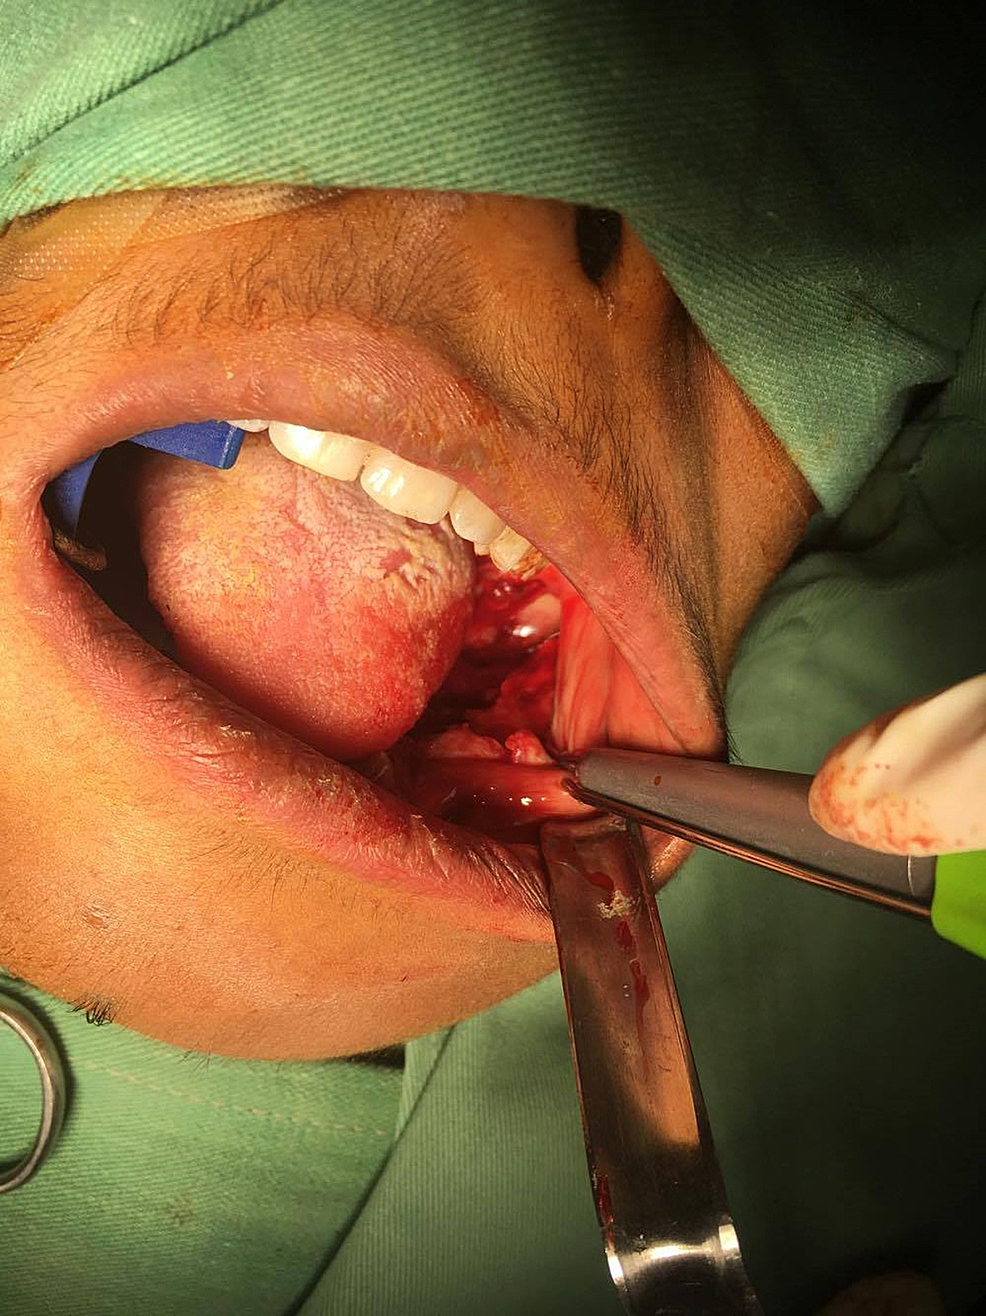 Clinical-picture-showing-the-exposure-of-the-lesion-through-the-extraction-sockets